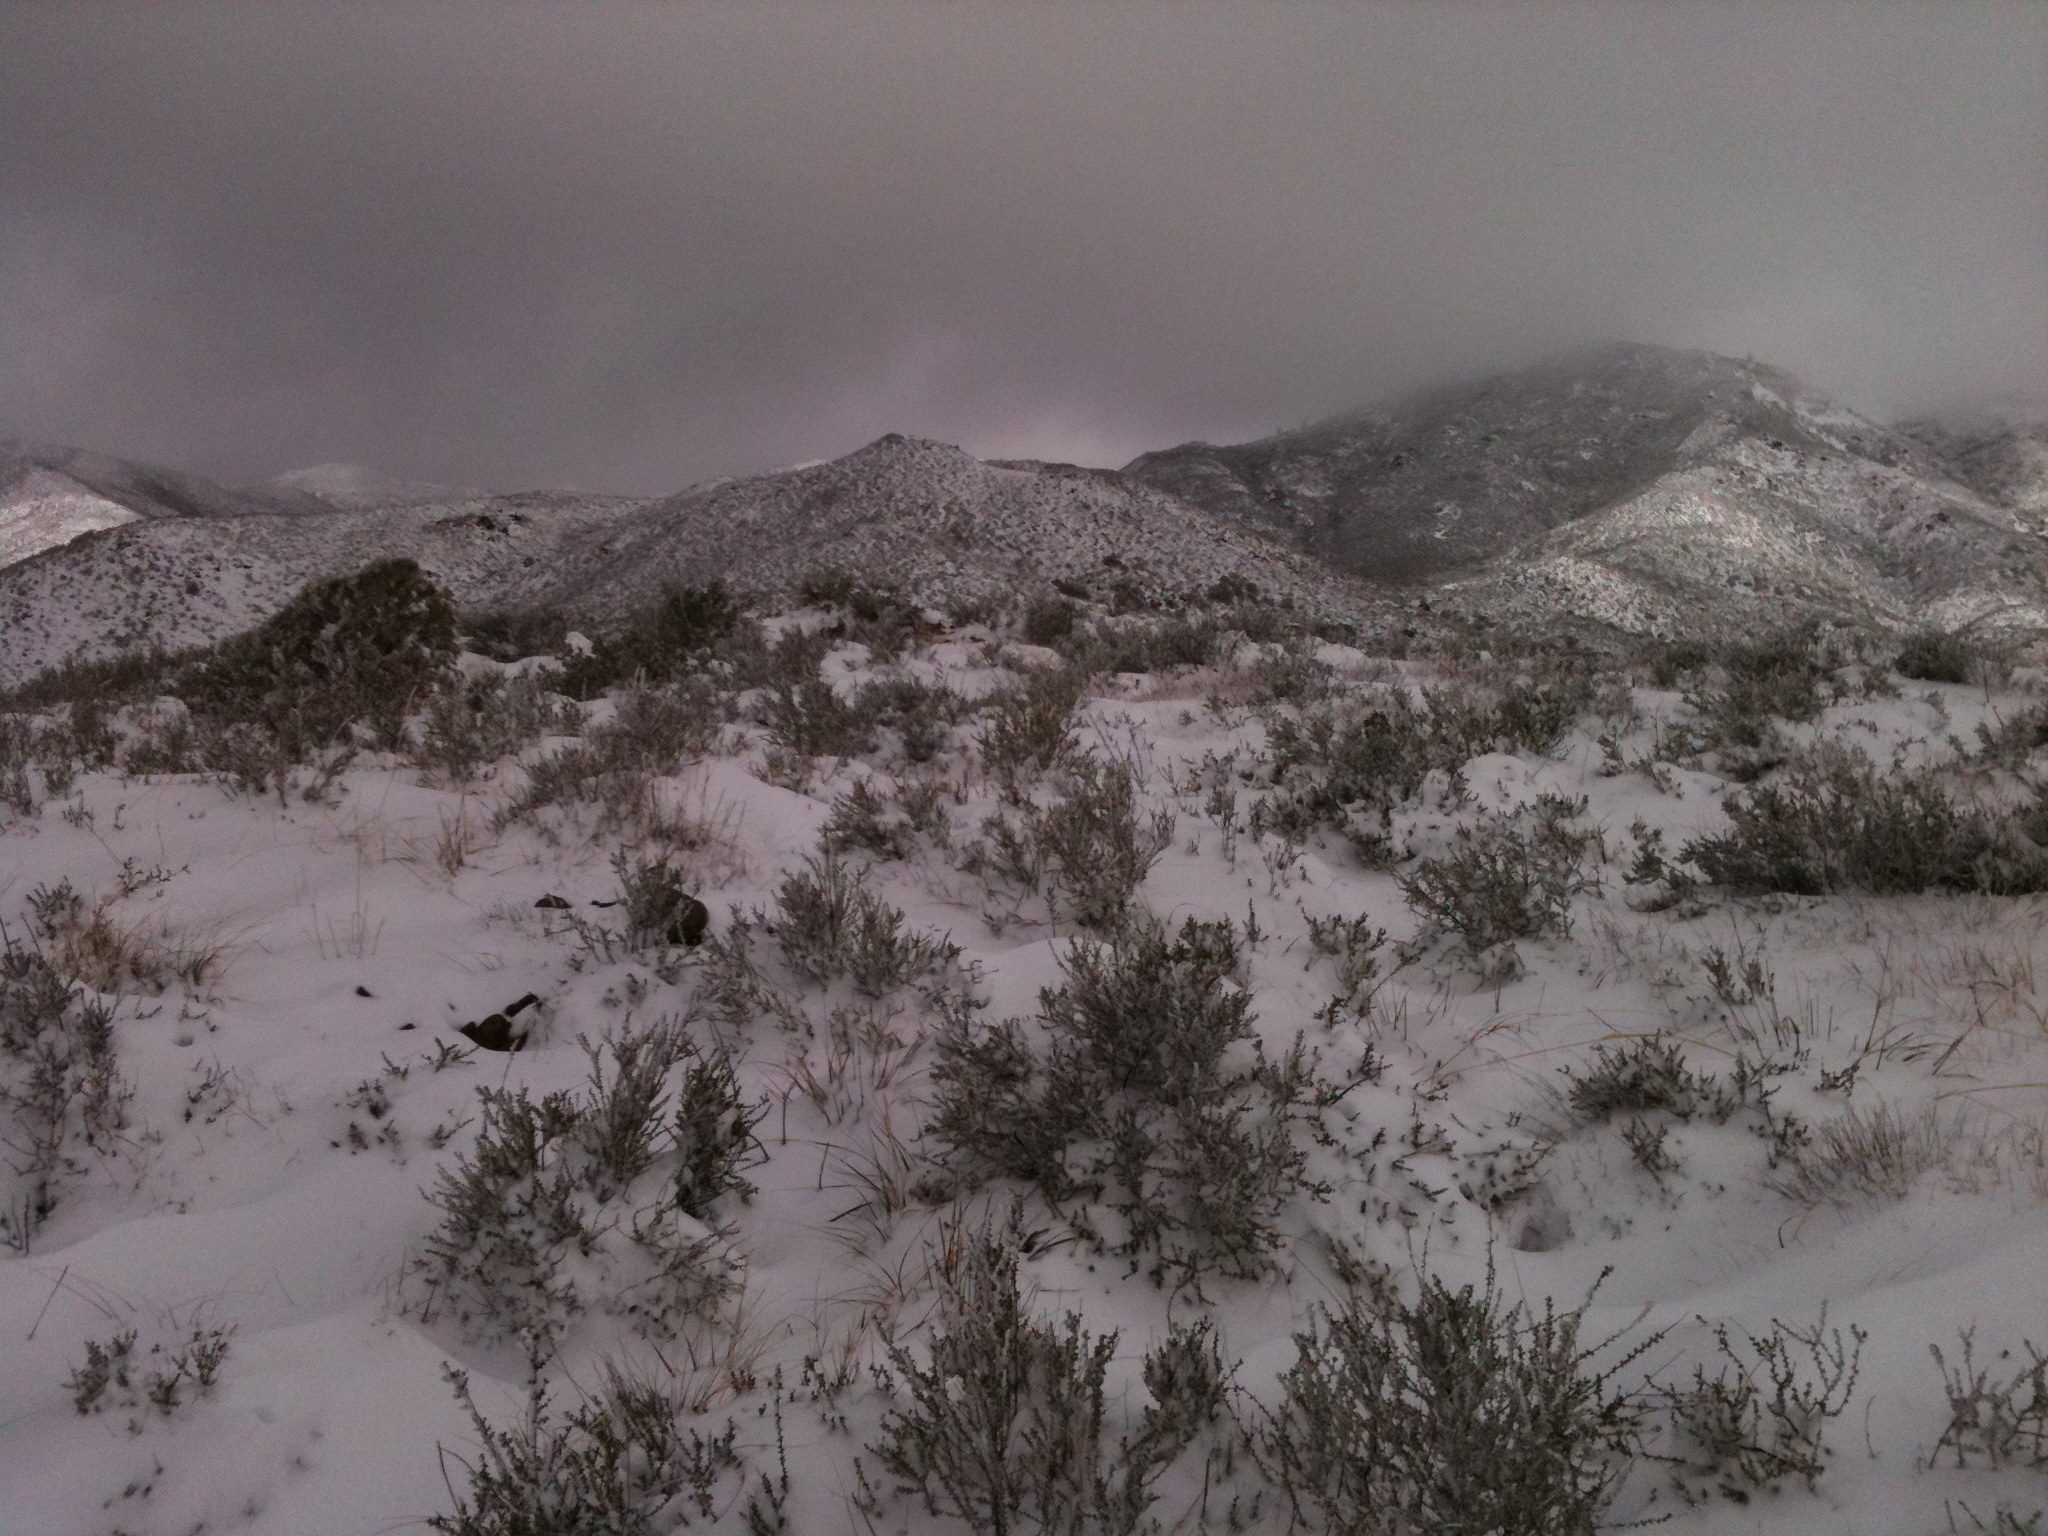 Shrubs on snowy hillside, rocky peaks in background